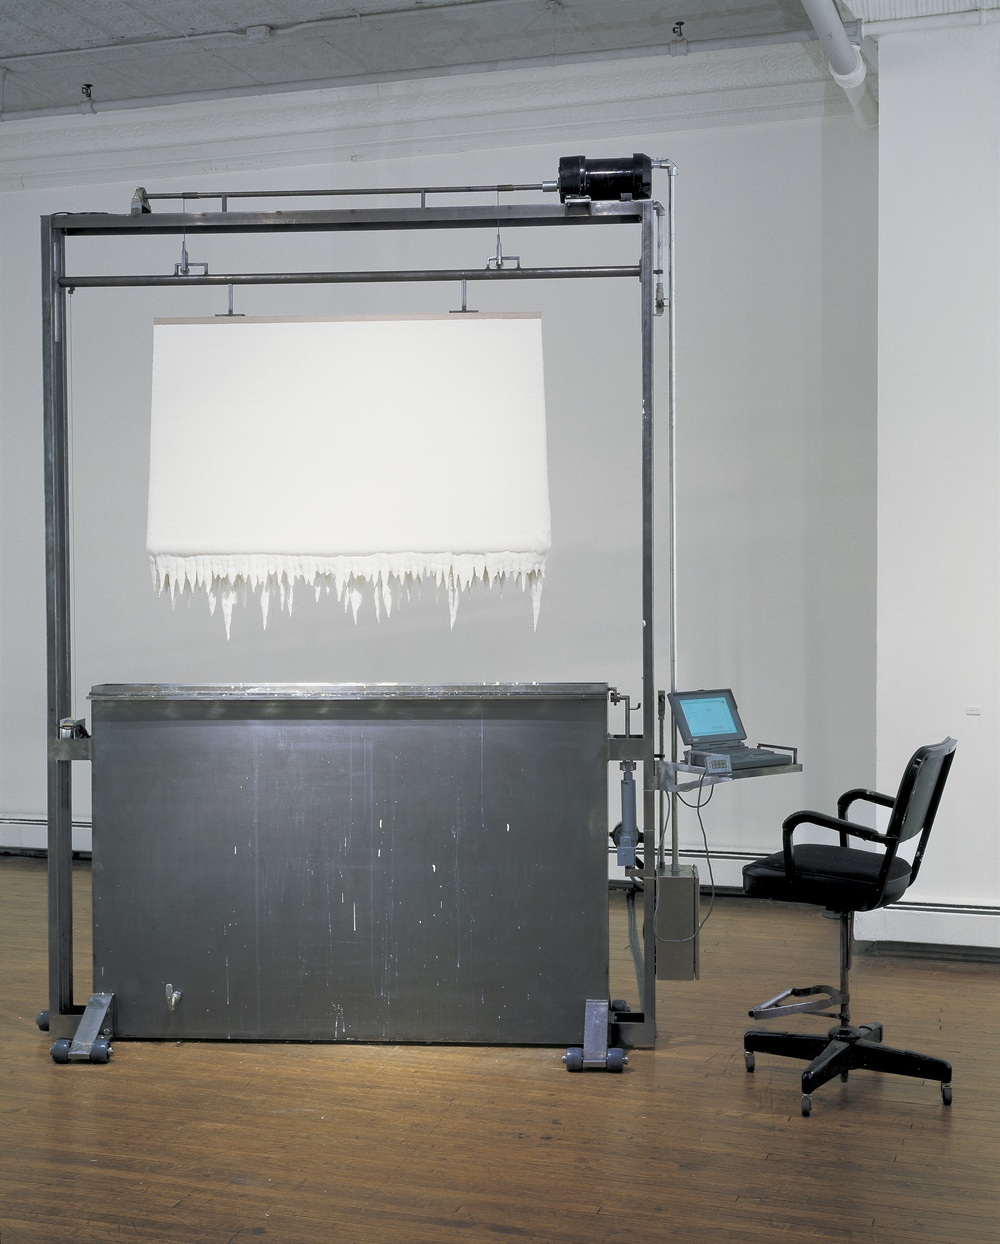 Paint Dipper, 1996, Steel, acrylic paint, computer, motors, interface, relays, chair, 124 x 99 x 24 inches